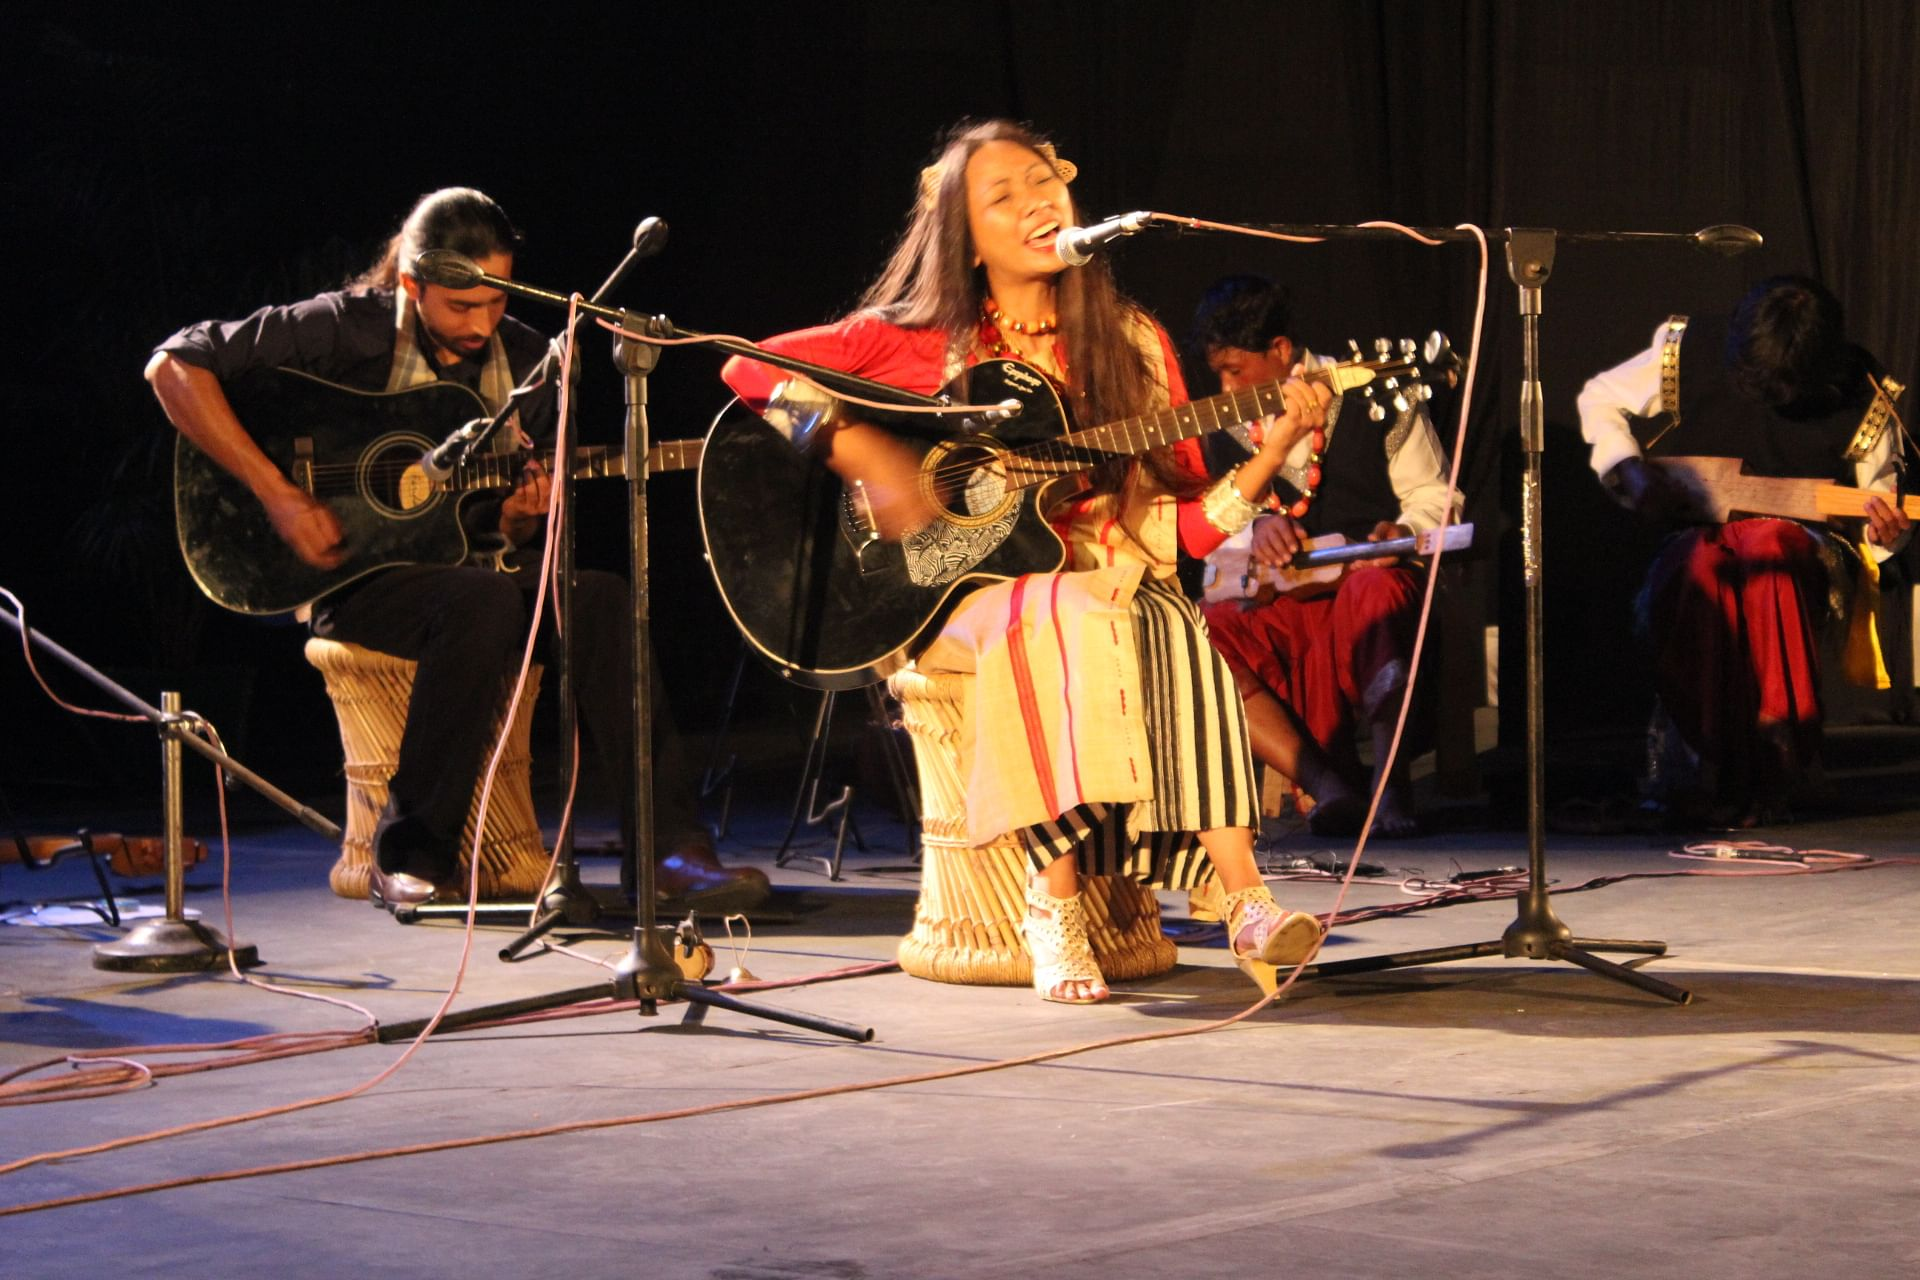 Rida Gatphoh, 30, is founder, songwriter and lead singer of 'The Musical Folks'. (Ninglun Hanghal\WFS)